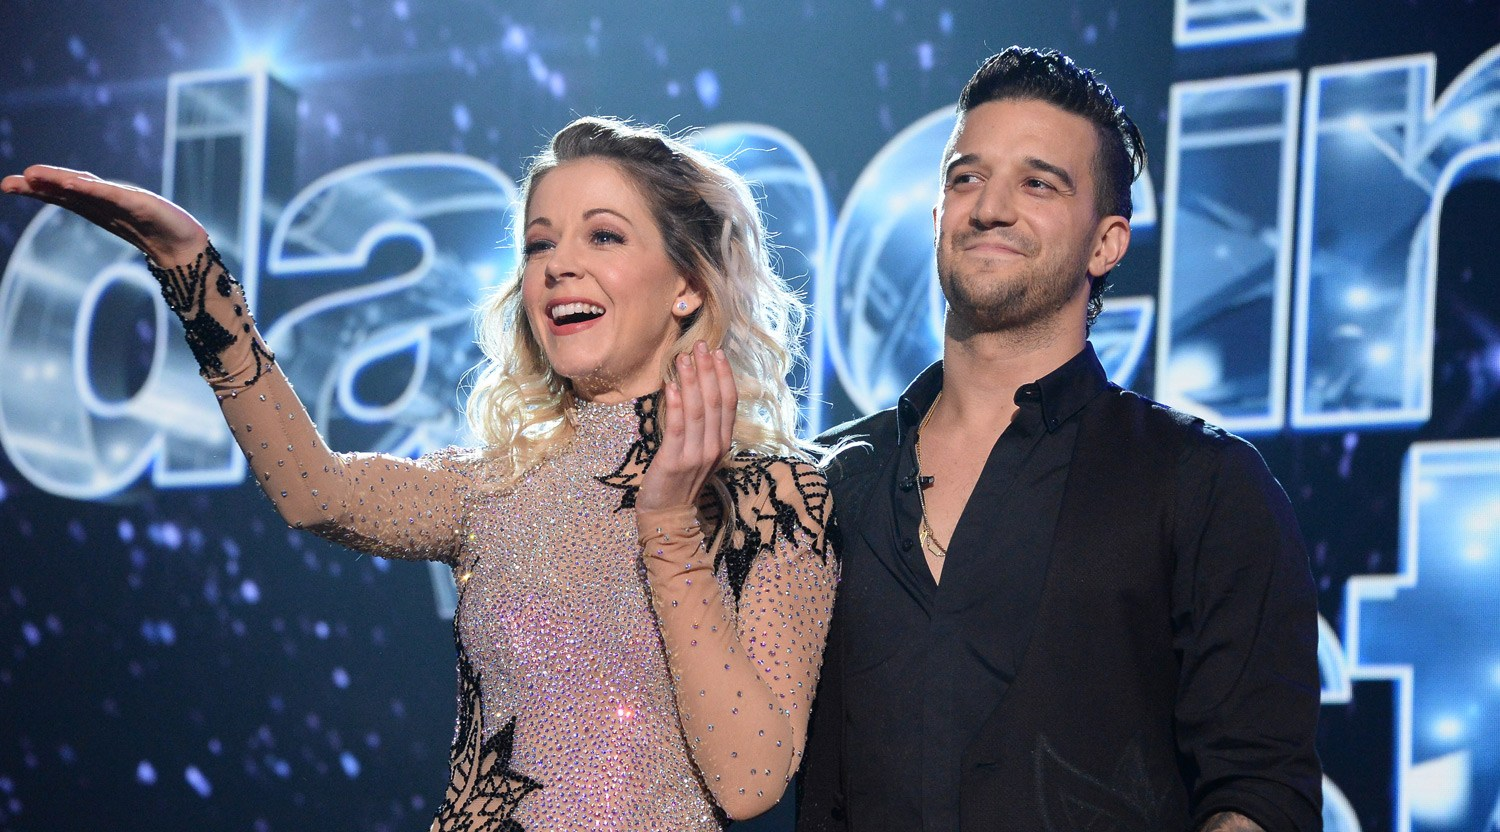 Lindsey Stirling and Mark Ballas stand next to each other on the stage